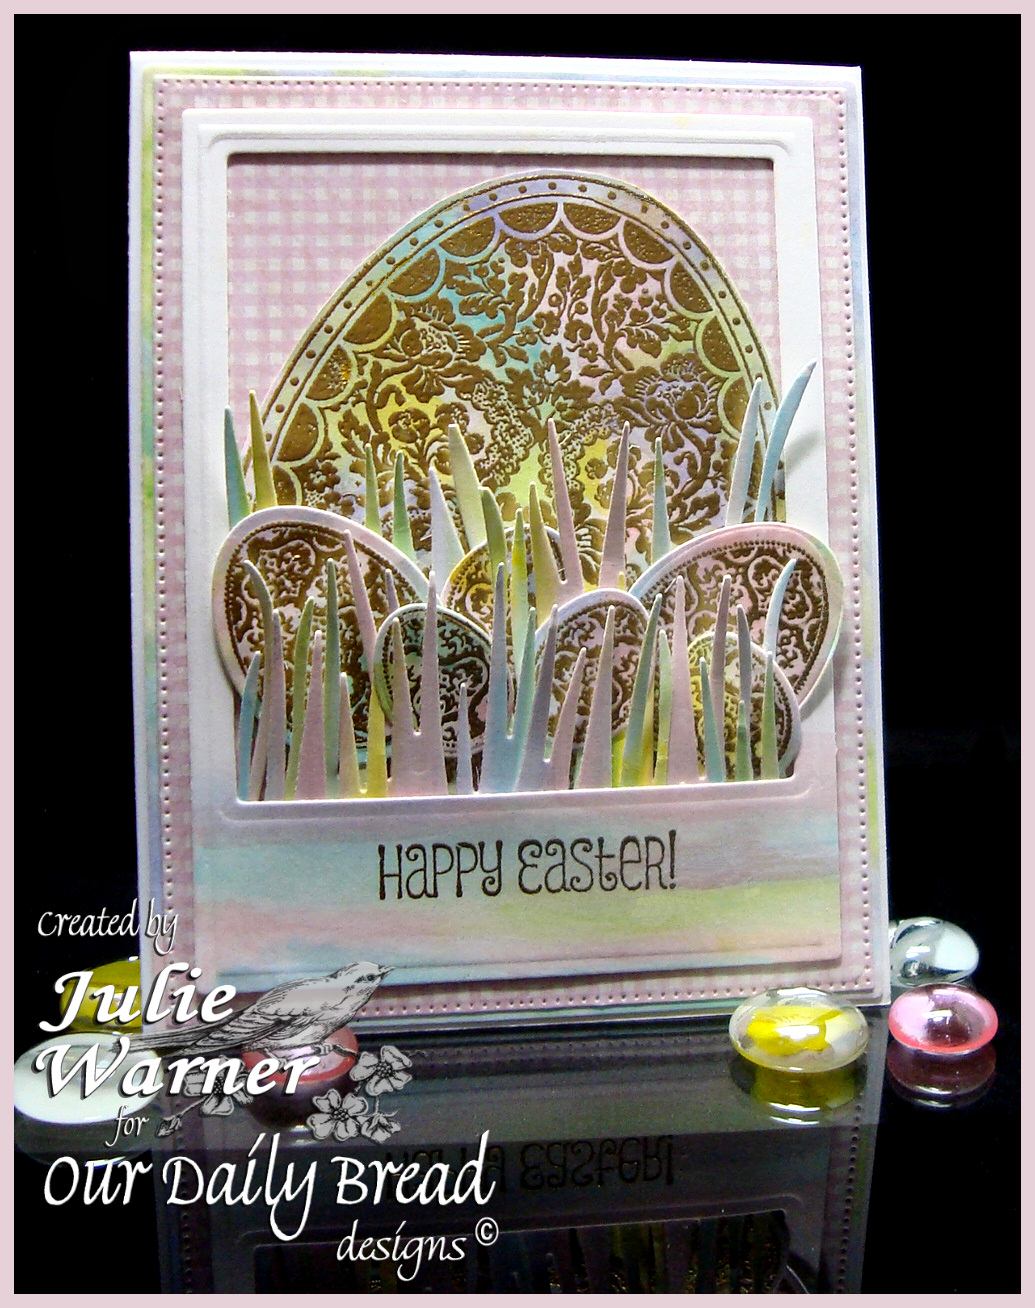 Stamps - Our Daily Bread Designs Basket of Blessings, Floral Egg, Blessed Easter, ODBD Custom Eggs Dies, ODBD Custom Grass Border Die, ODBD Custom Flourished Star Pattern Die, ODBD Shabby Rose Paper Collection